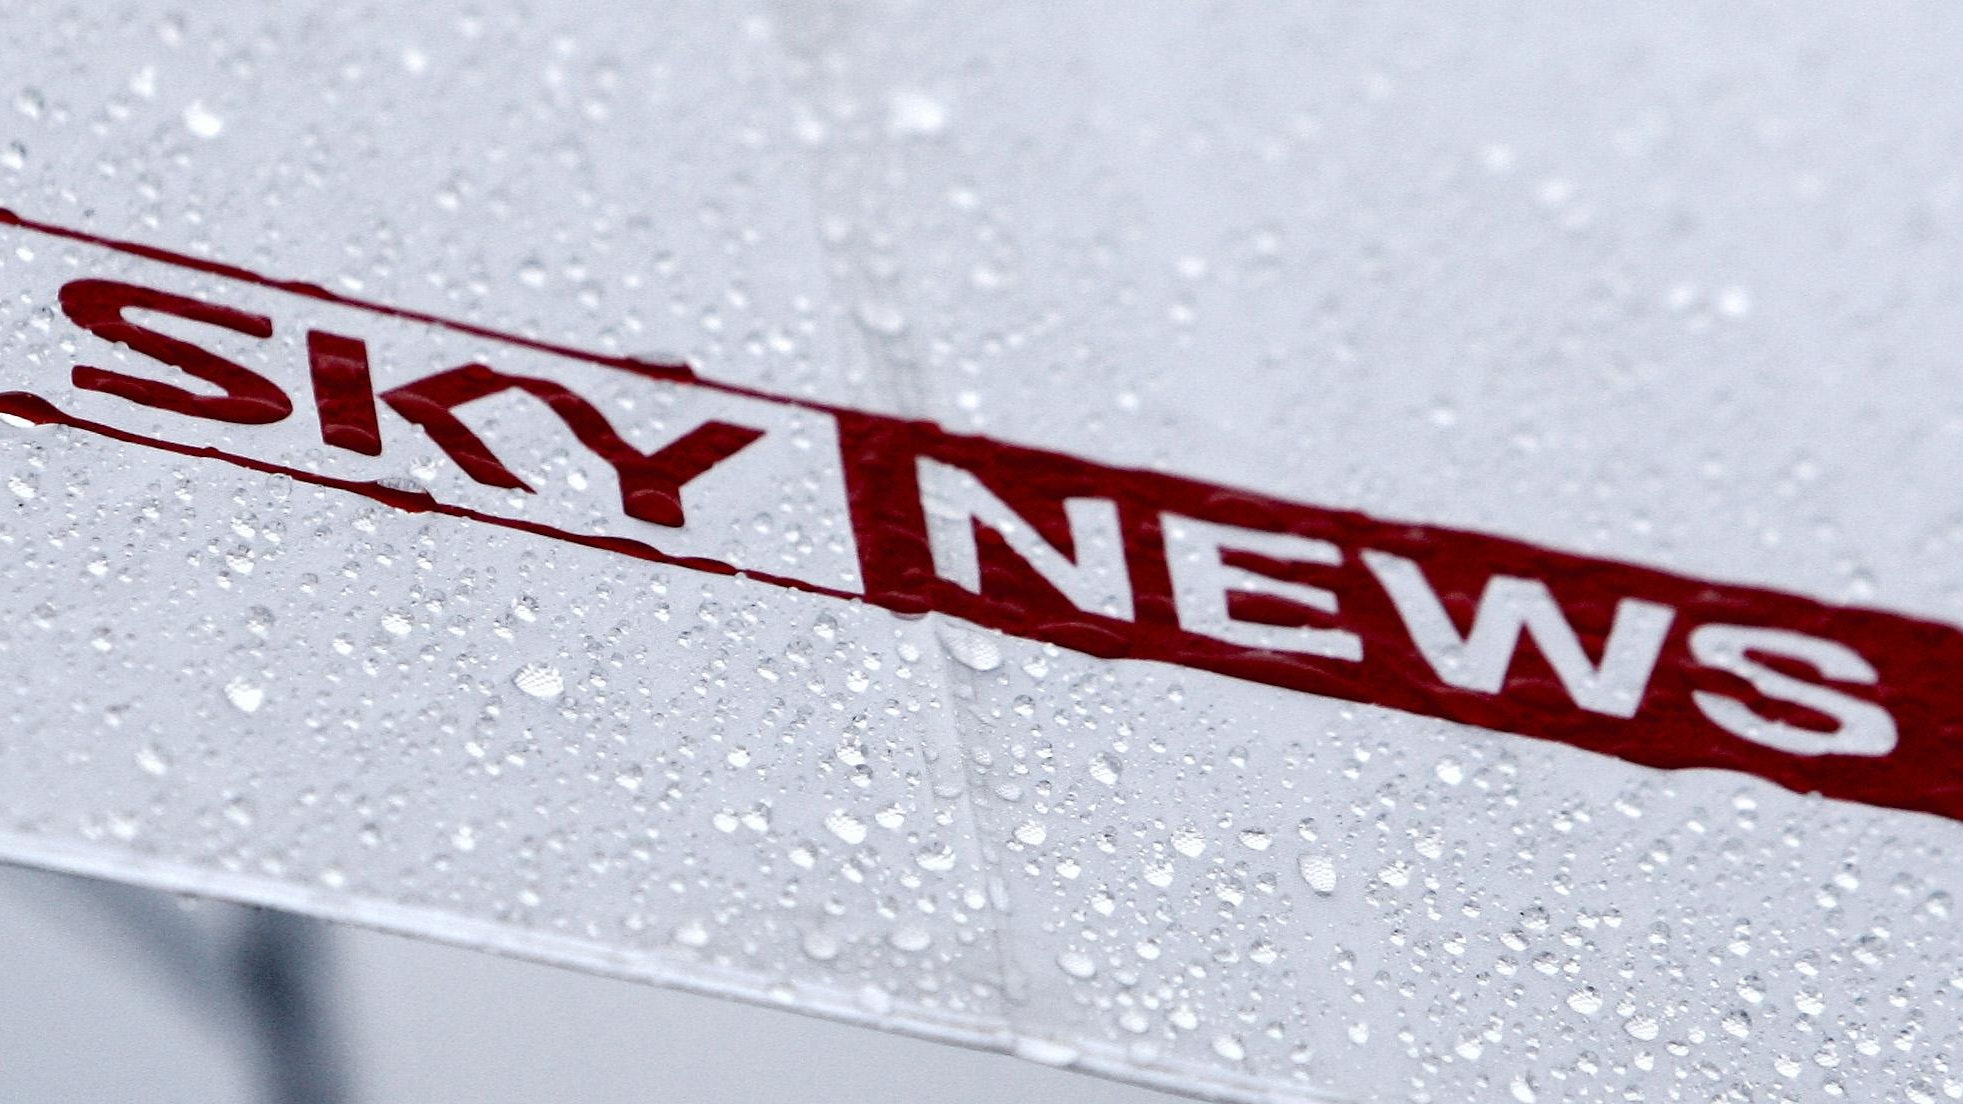 21st Century Fox extends it guarantee over Sky News